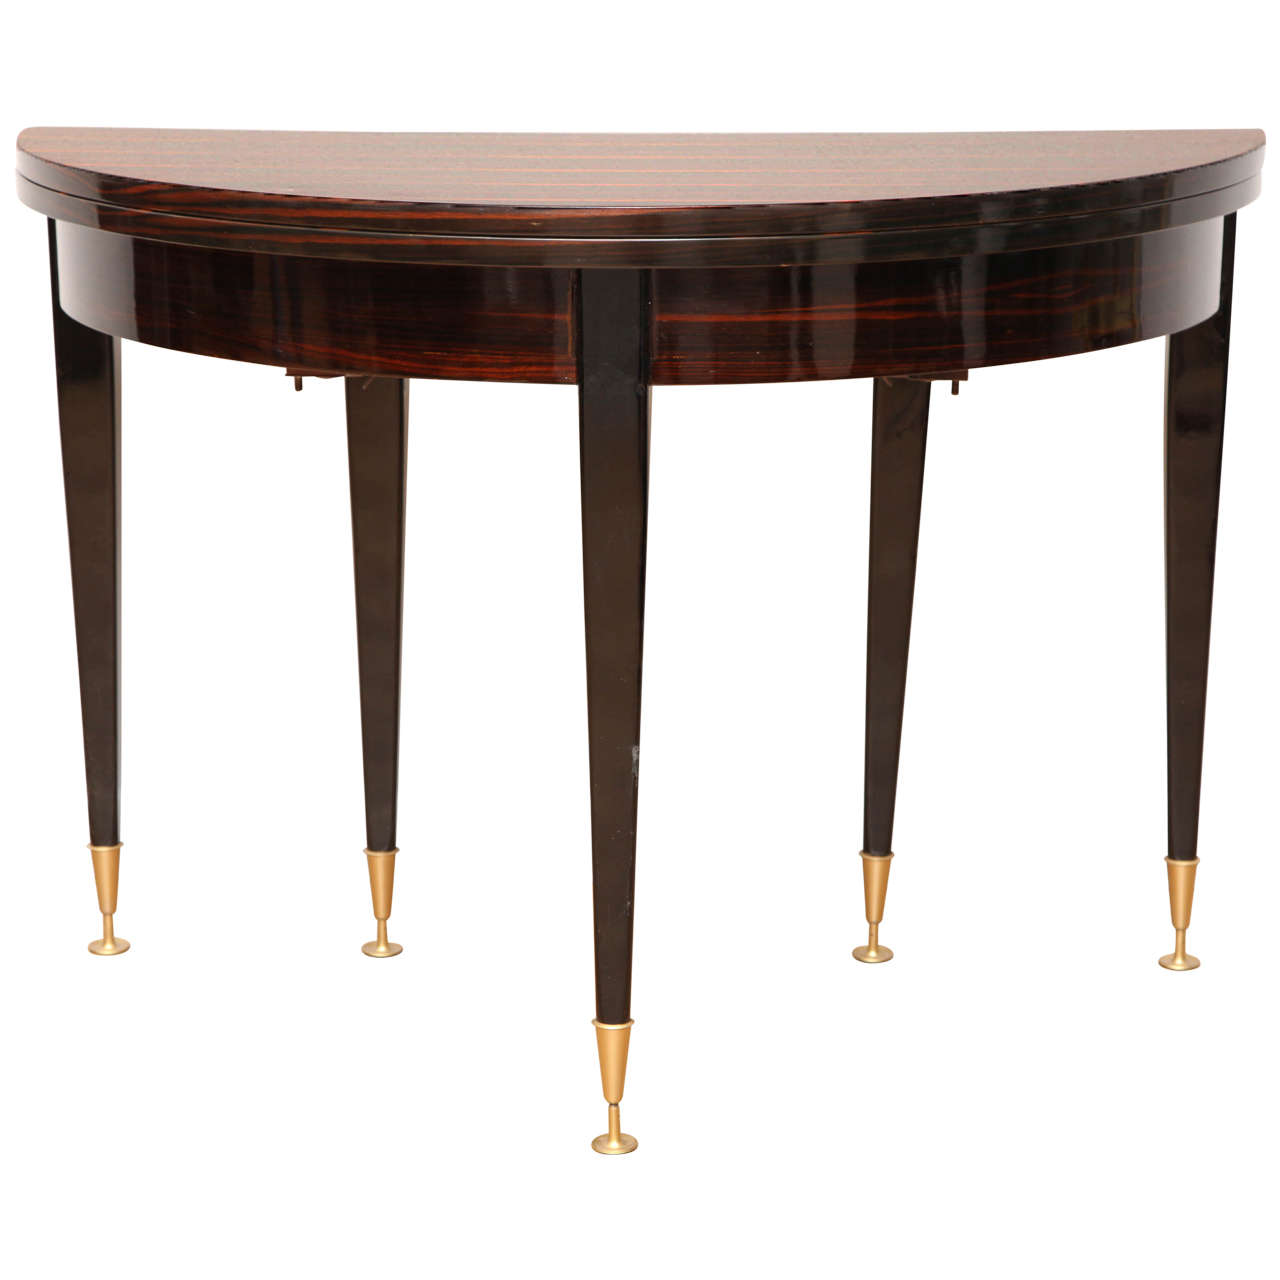 Fabulous art deco round expandable dining table at 1stdibs - Console table that expands for dining ...